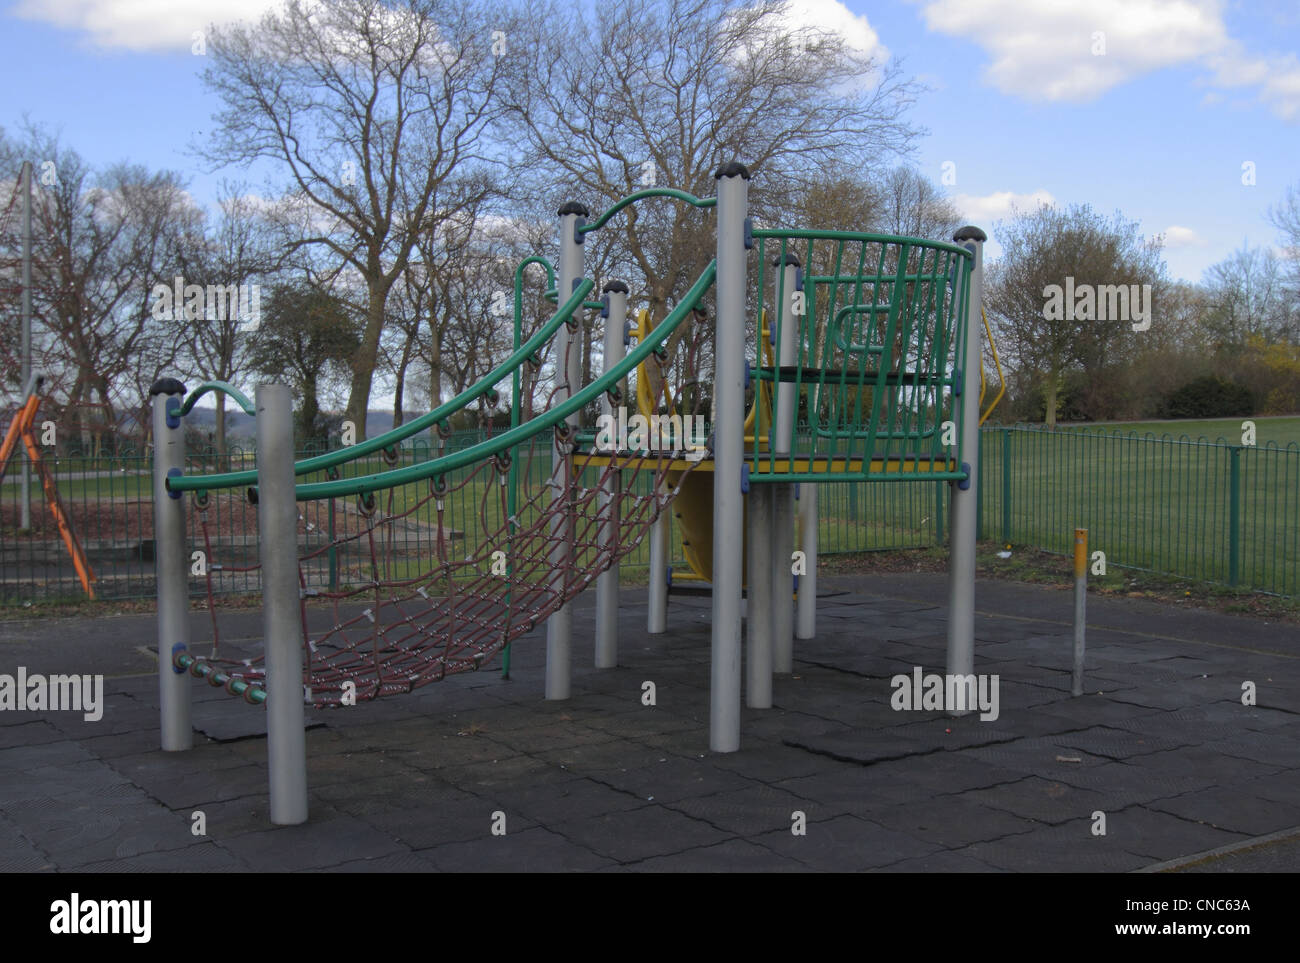 childrens play area in park swings see-saw slide - Stock Image